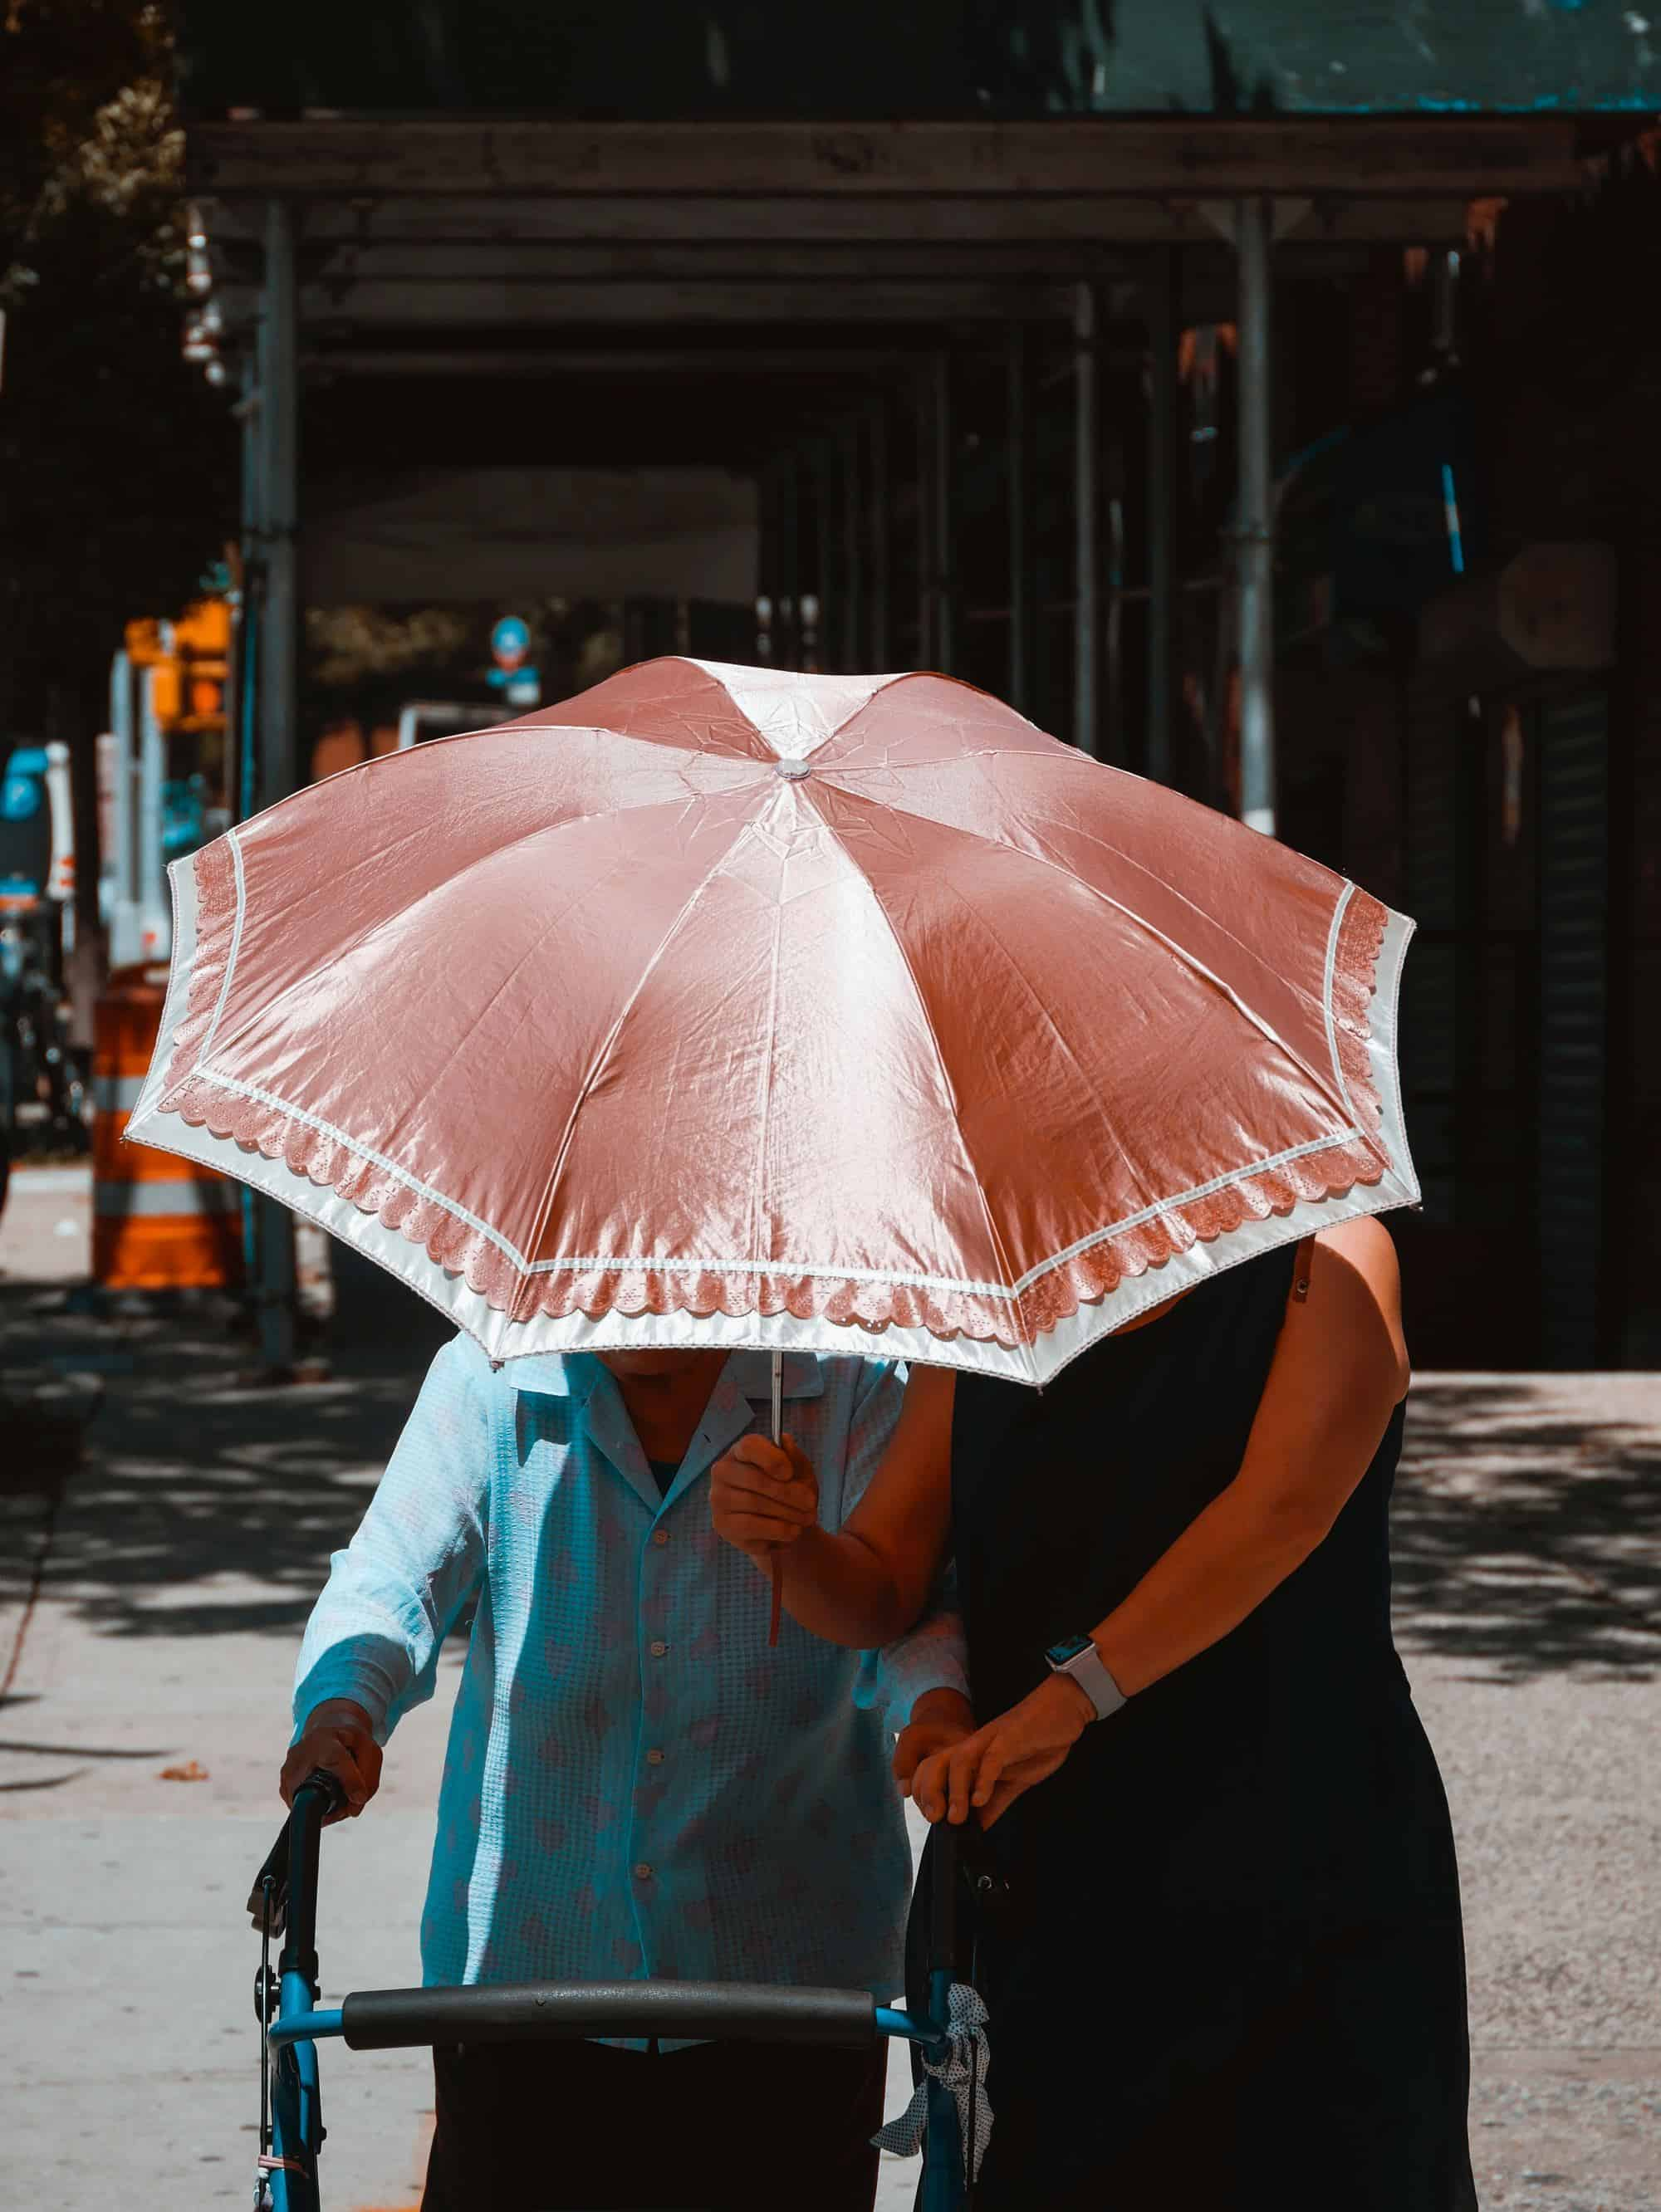 two women, one using a walker, under an umbrella together